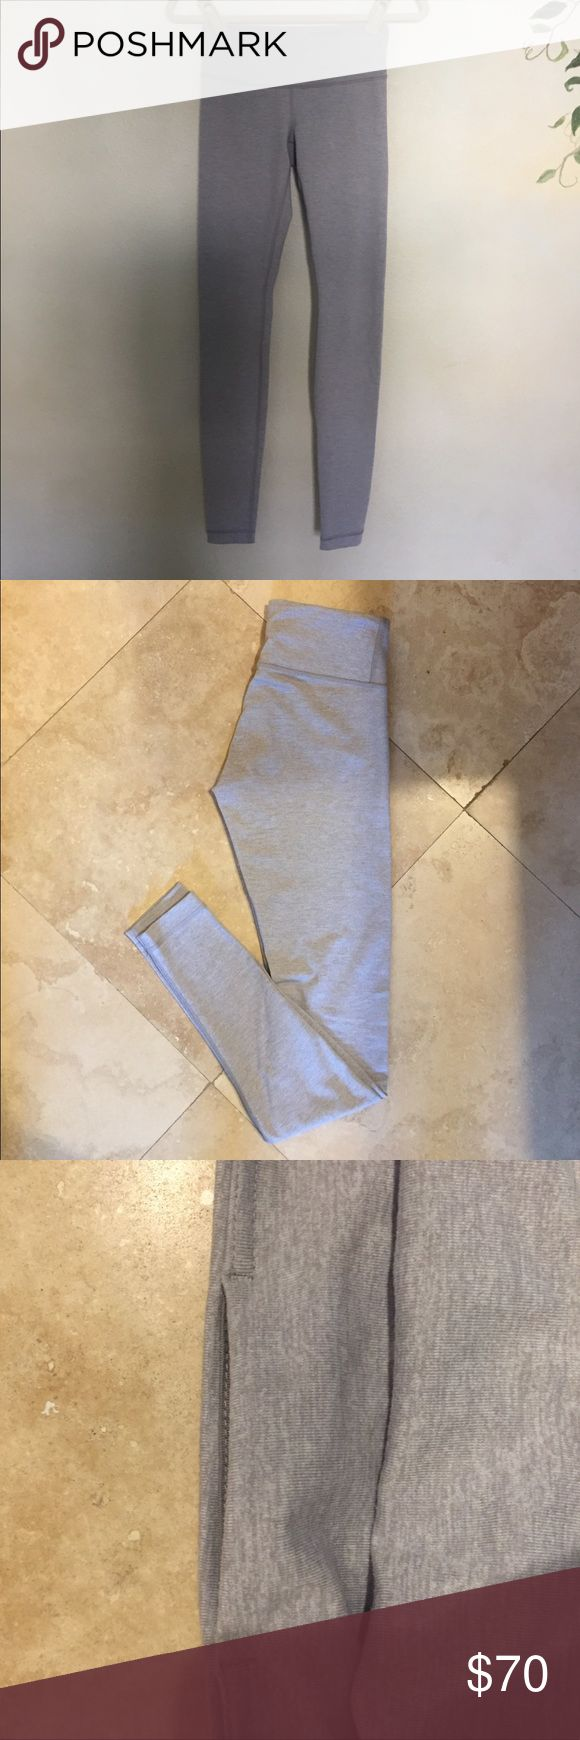 CLASSIC GREY LULU LEGGINGS ‼️SALE classic grey wunder unders with small pocket on the inside!! Cute and casual!! THEY ARE BRAND NEW AND NEVER WORN! lululemon athletica Pants Leggings